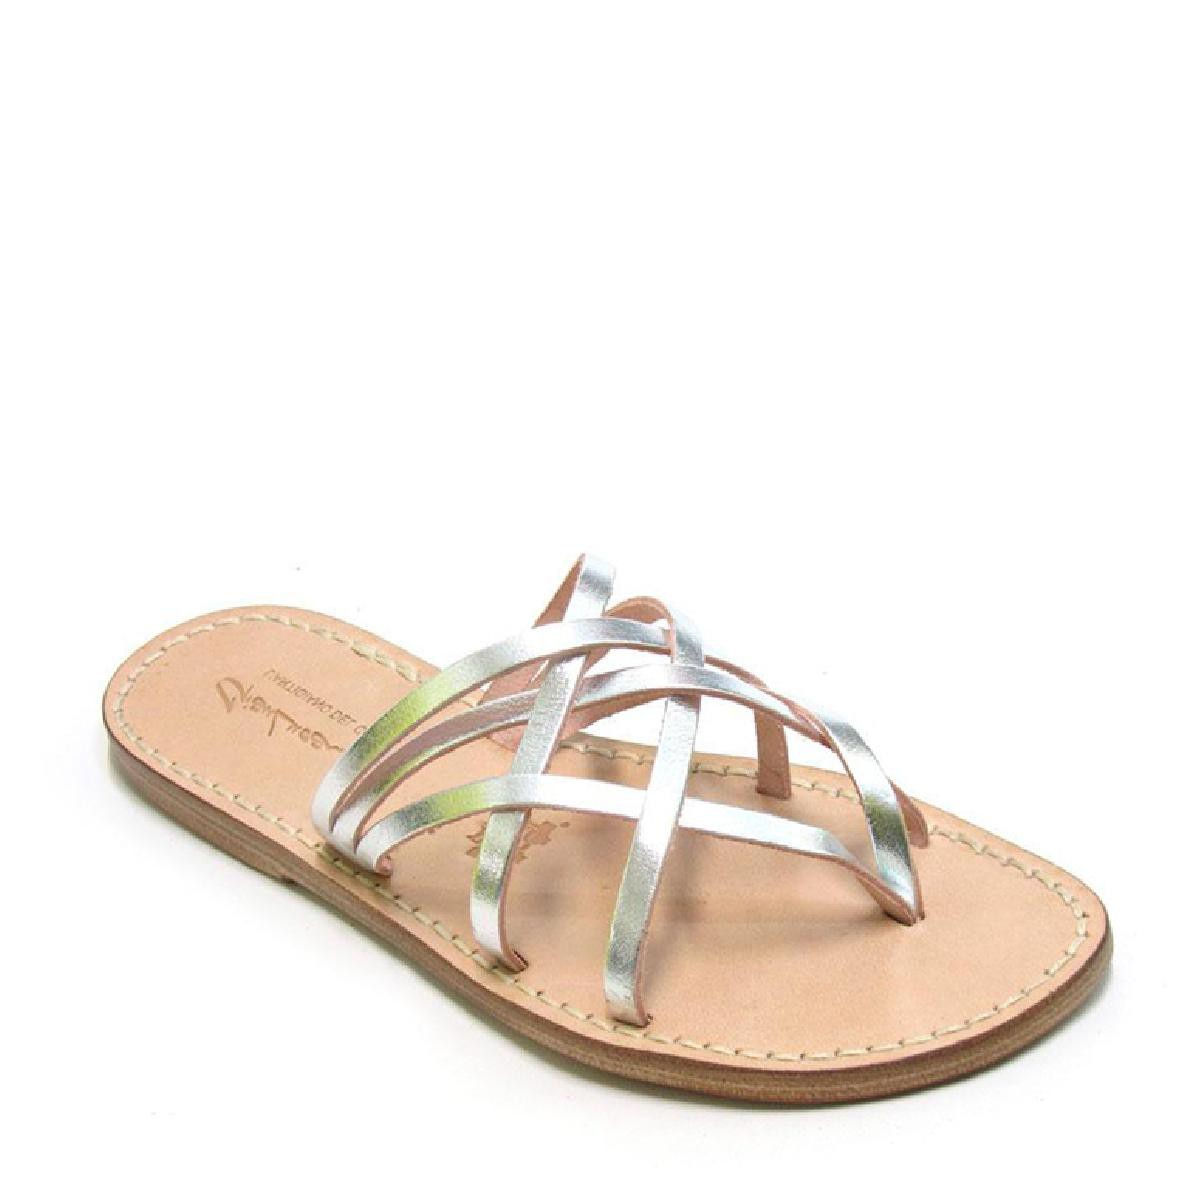 Flat sandals - Handmade Womens Silver Flat Sandals Thongs With Leather Sole